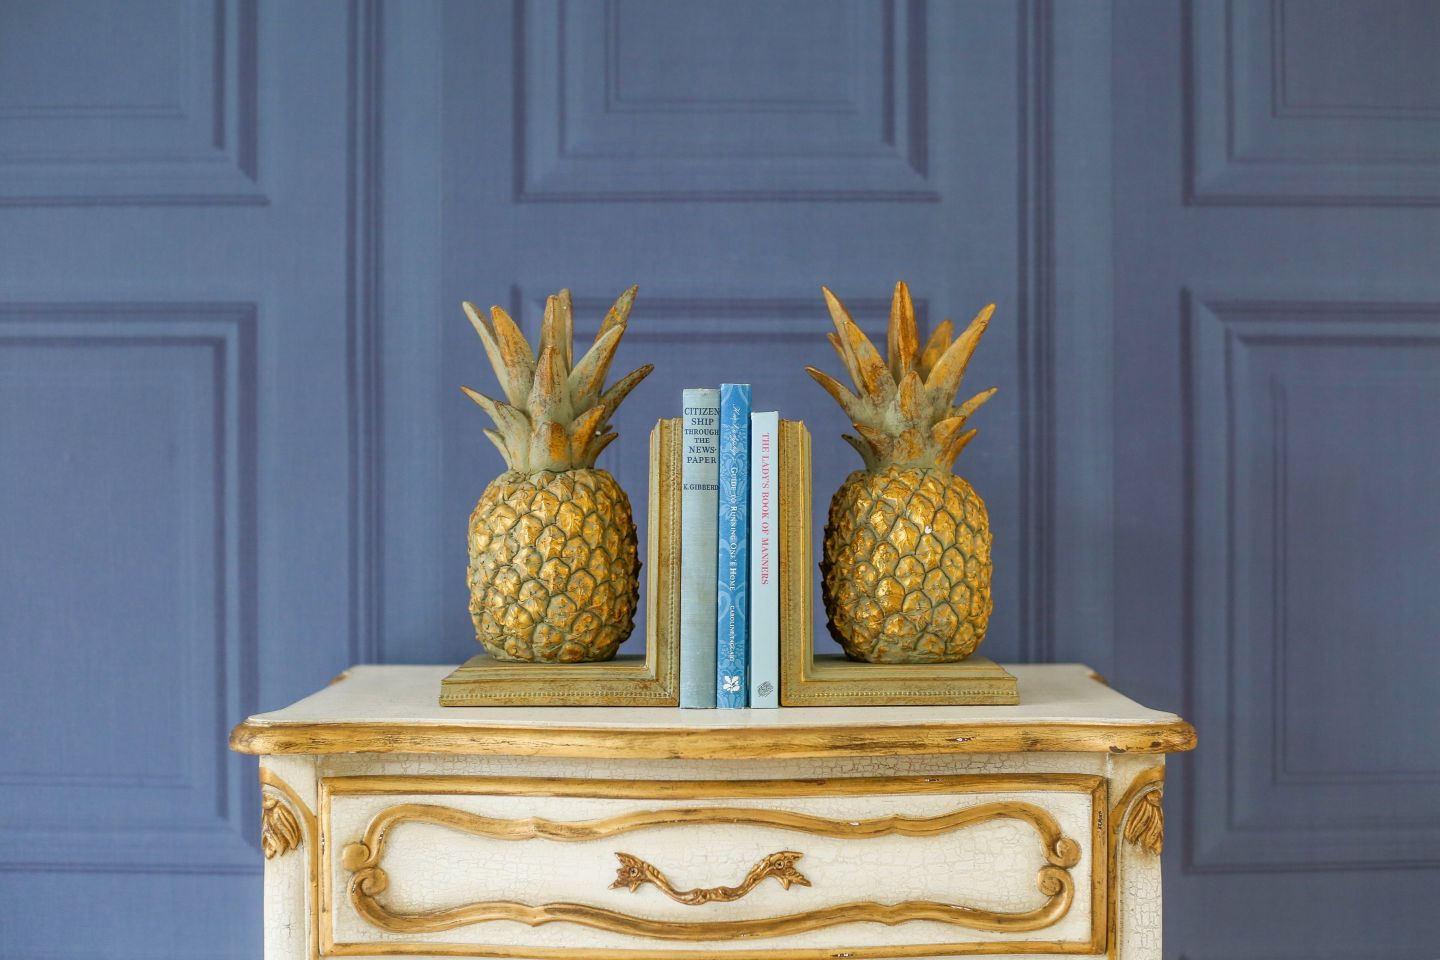 The-French-Bedroom-Co-Pineapple-Bookends-Lifestyle-2043813-1440x960 Pineapple Decor: Tips for Decorating Your Home with Southern Hospitality